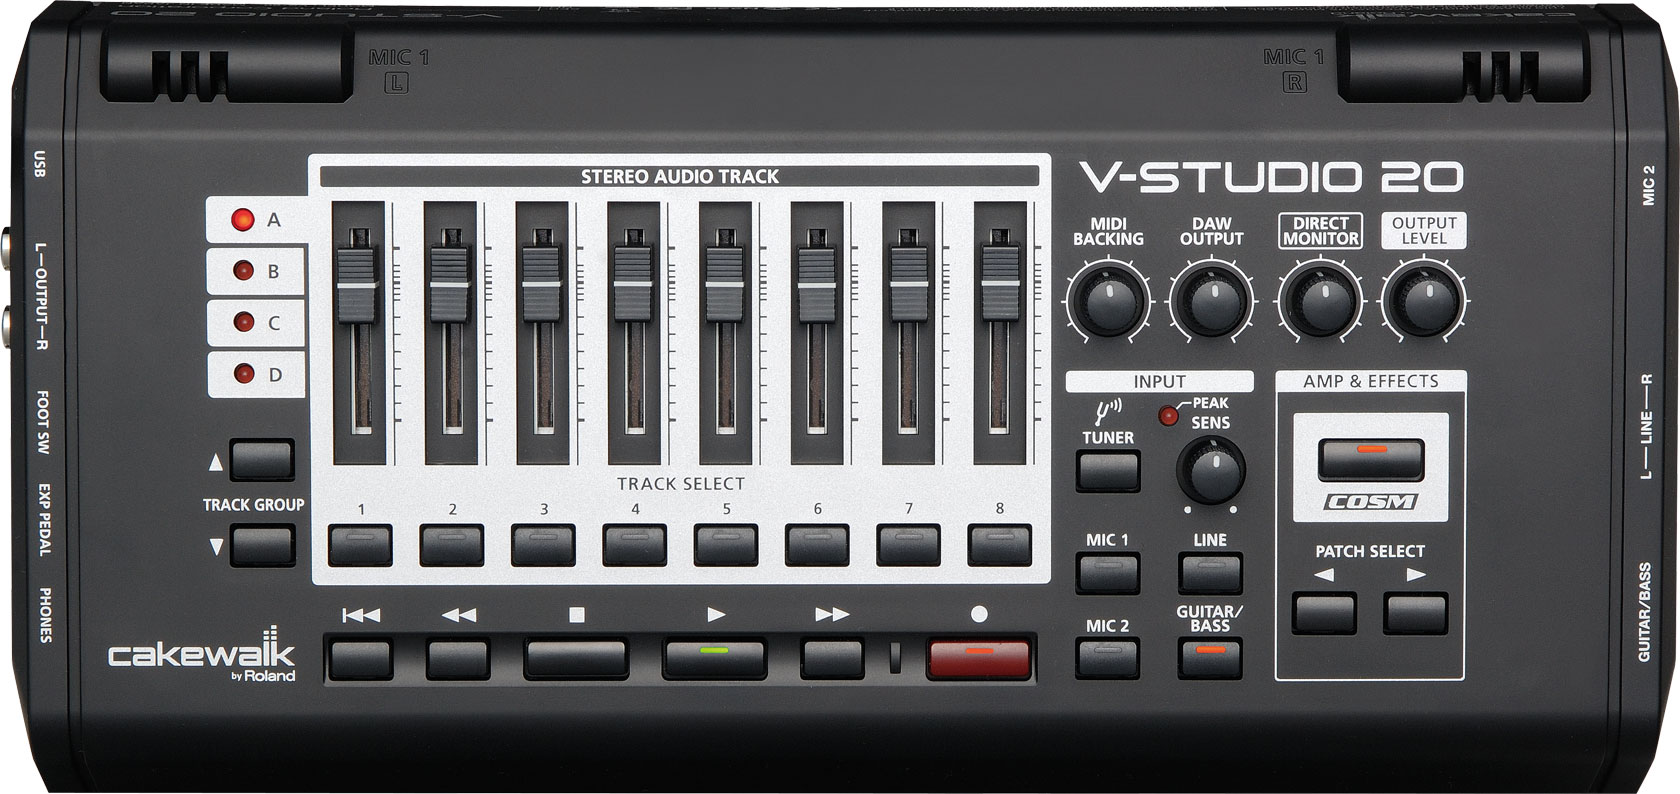 Roland - V-STUDIO 20 | Audio Interface/Control Surface with